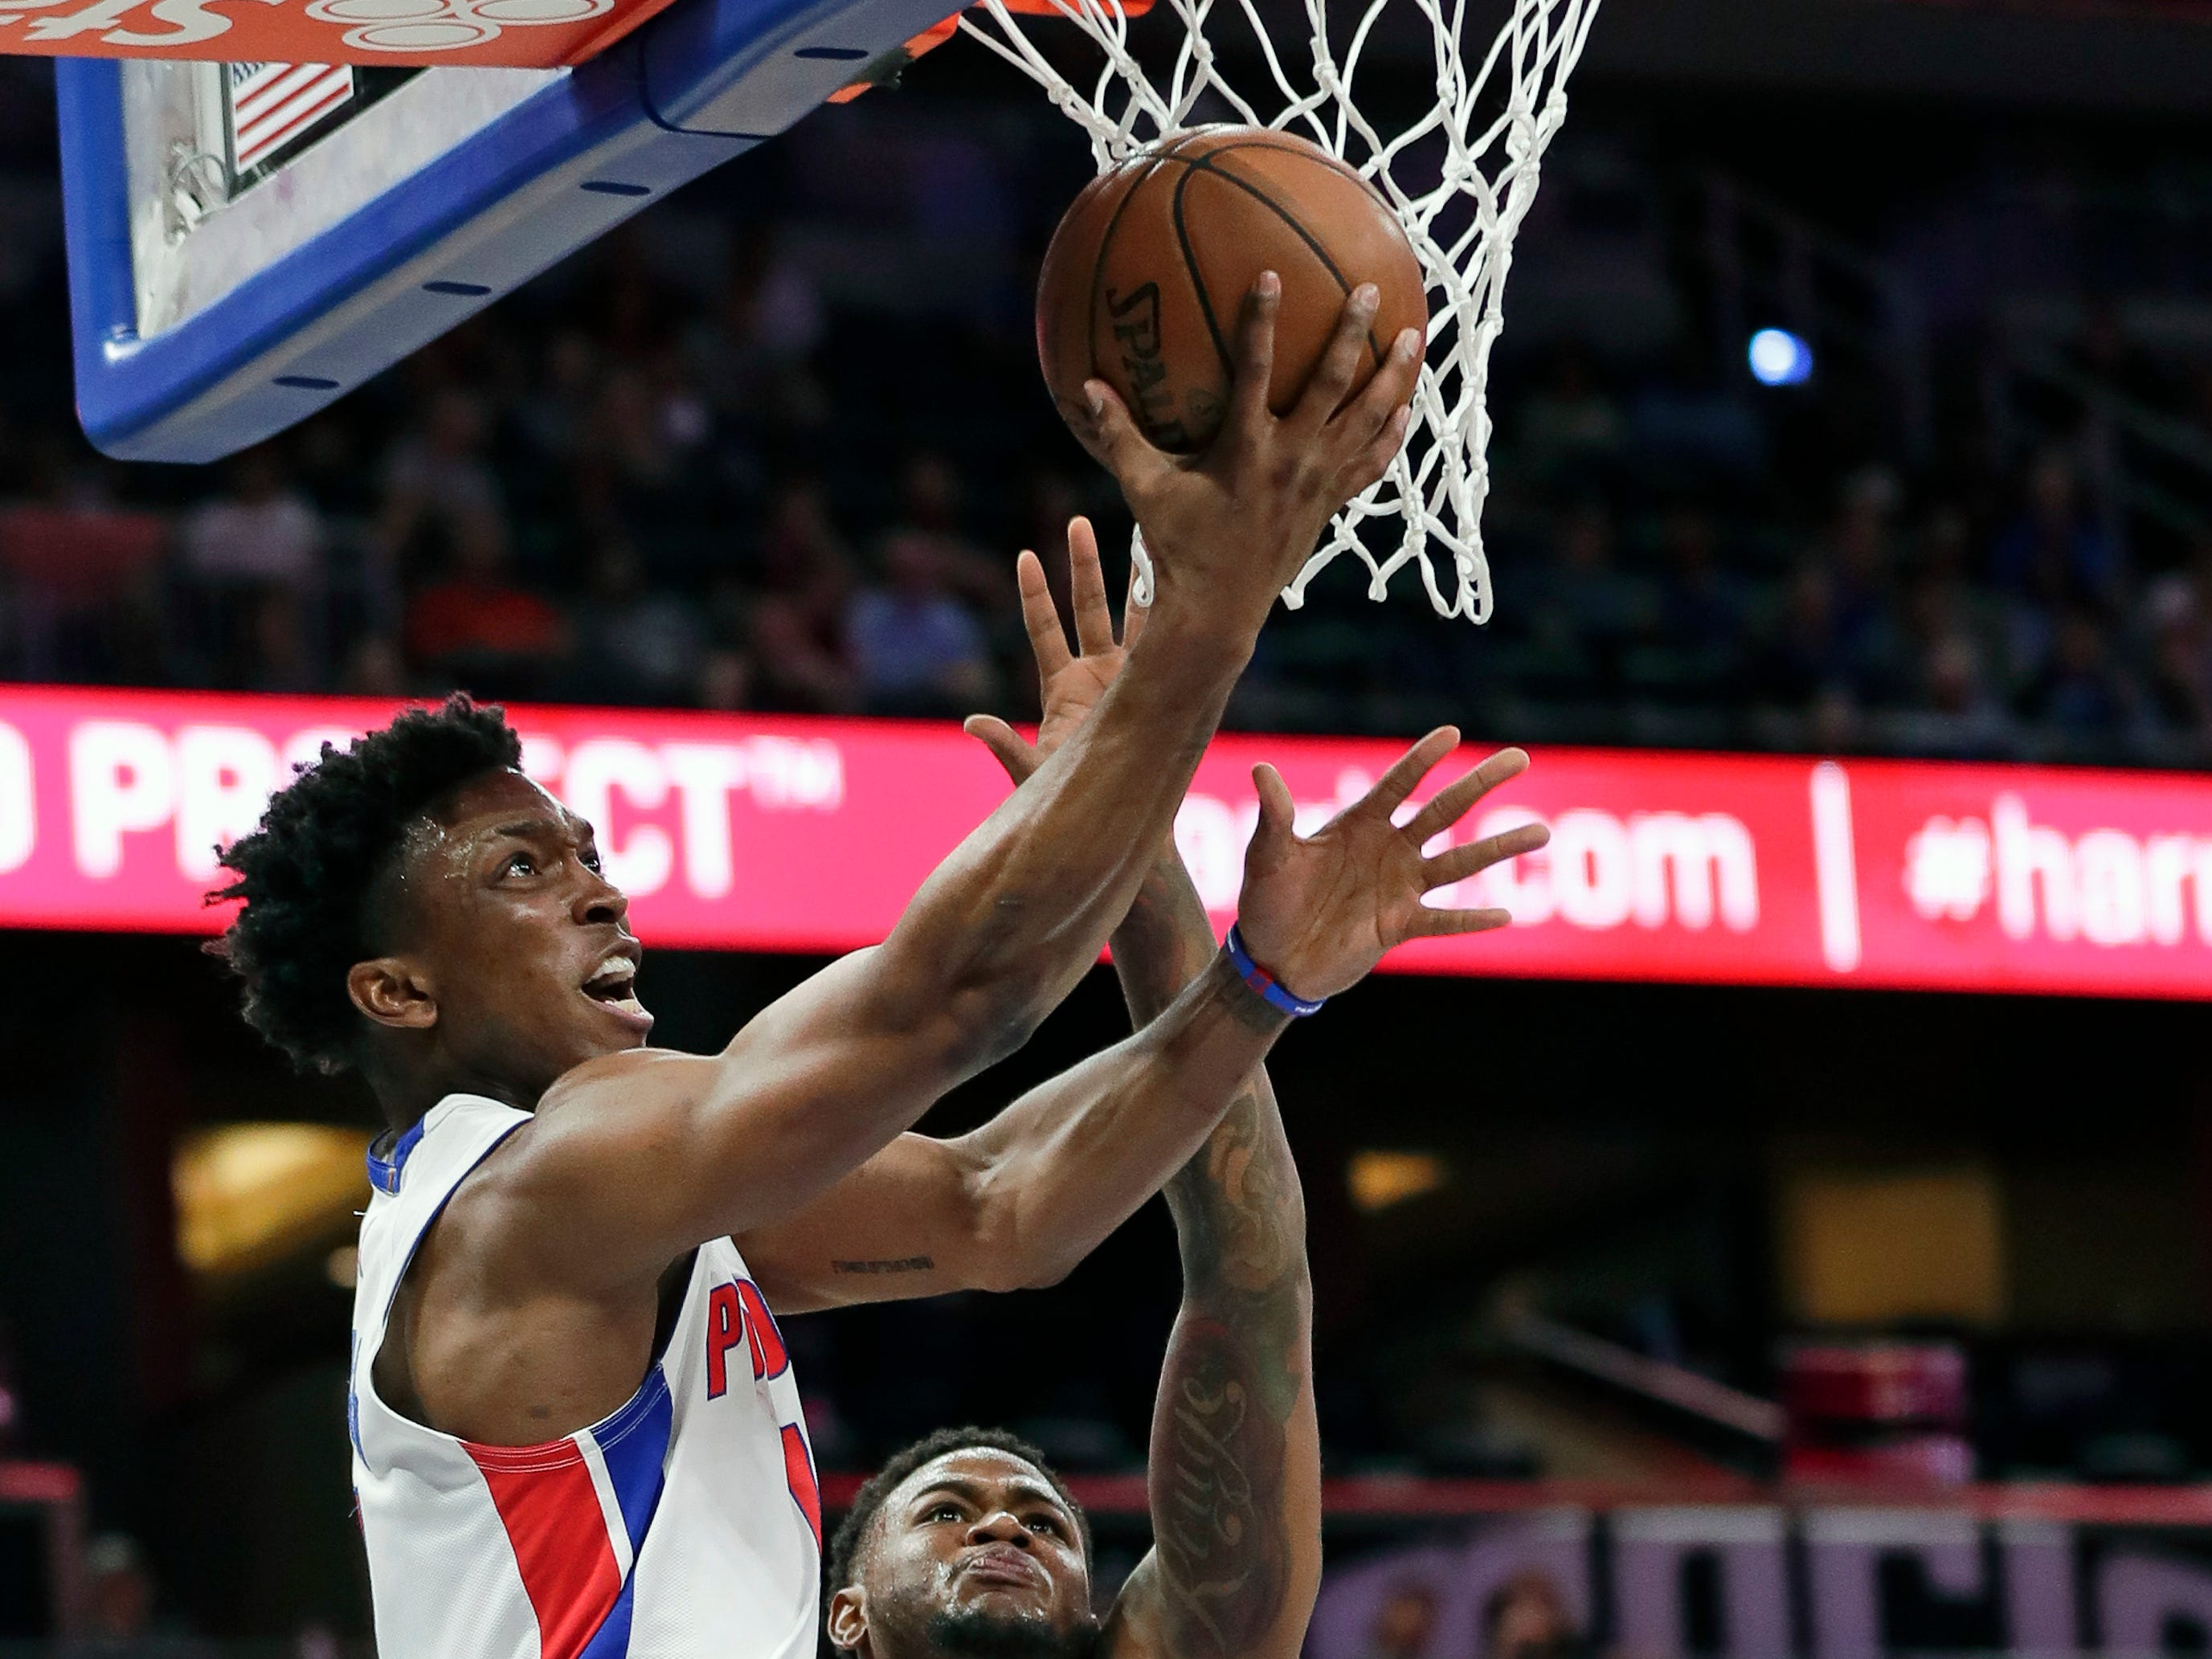 Detroit Pistons' Stanley Johnson, left, goes up for a shot past Orlando Magic's Jarell Martin (2) during the first half of an NBA basketball game, Wednesday, Nov. 7, 2018, in Orlando, Fla.